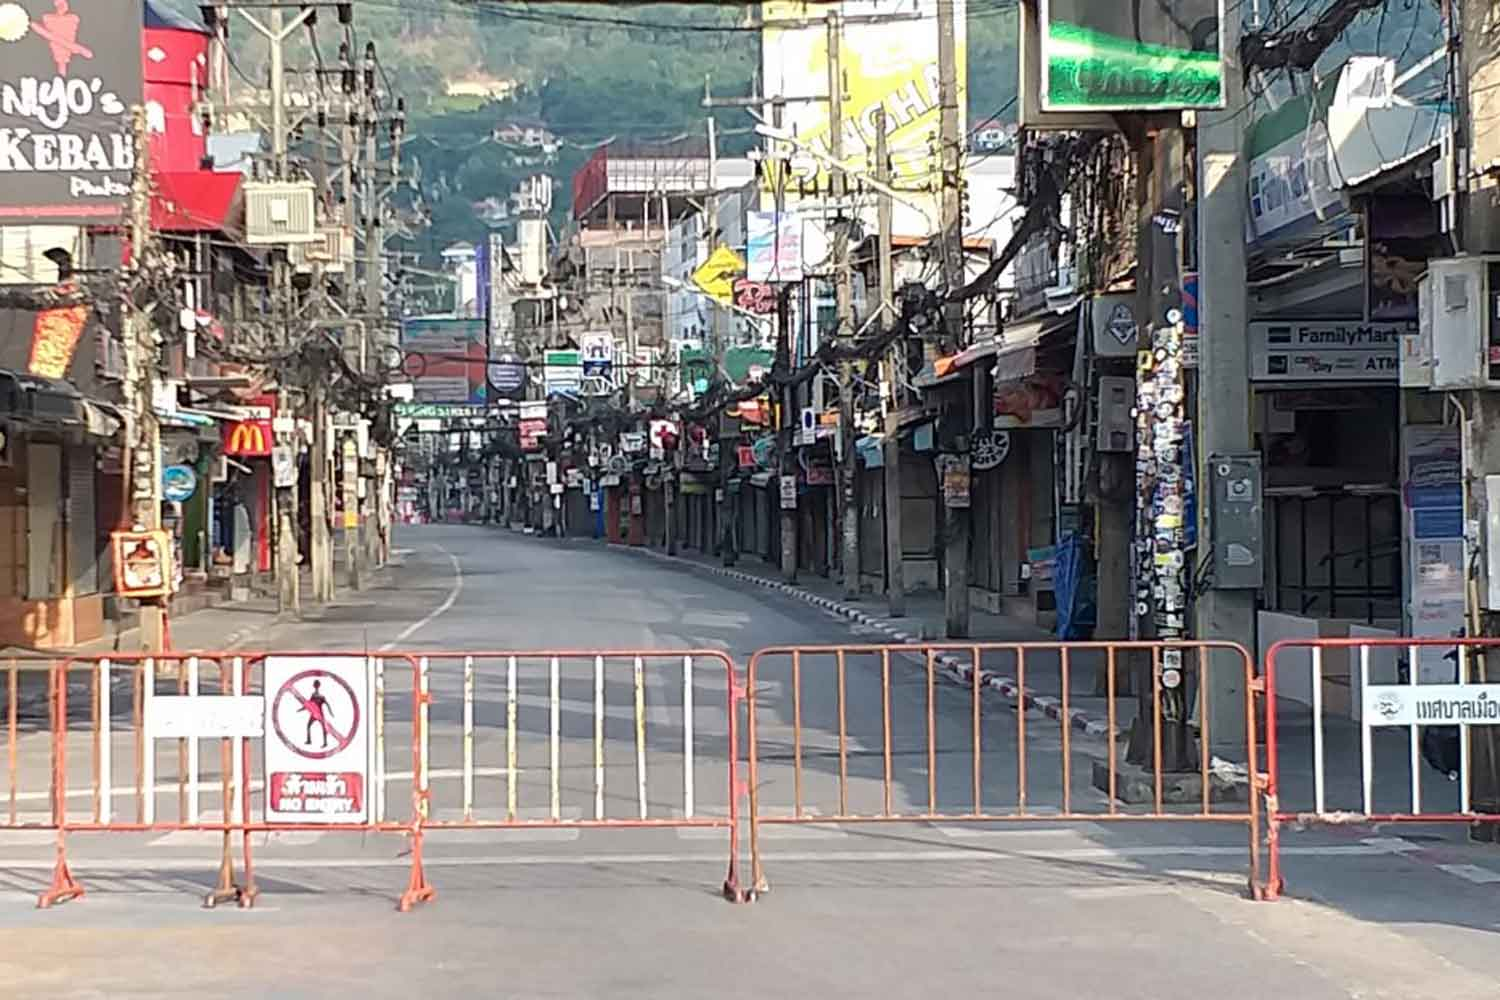 A barricade blocks entry to Soi Bangla in Phuket's Patong area, where entertainment venues have been ordered closed to stem the Covid-19 outbreak. (Photo: Achadtaya Chuenniran)